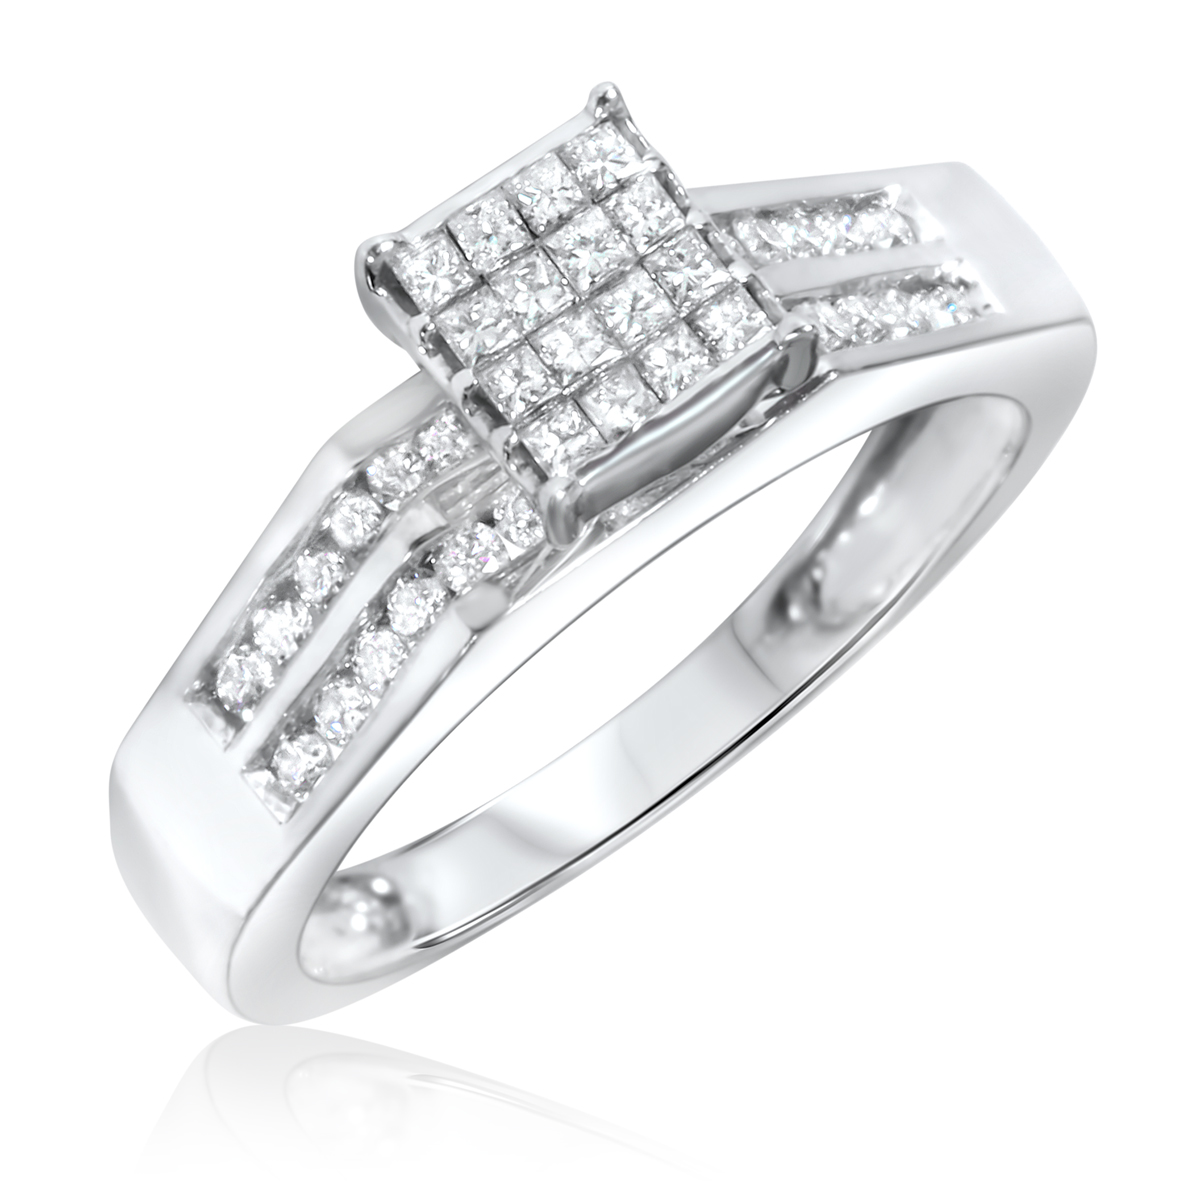 1 carat diamond trio wedding ring set 14k white gold my trio rings bt111w14k - Wedding Ring Trio Sets